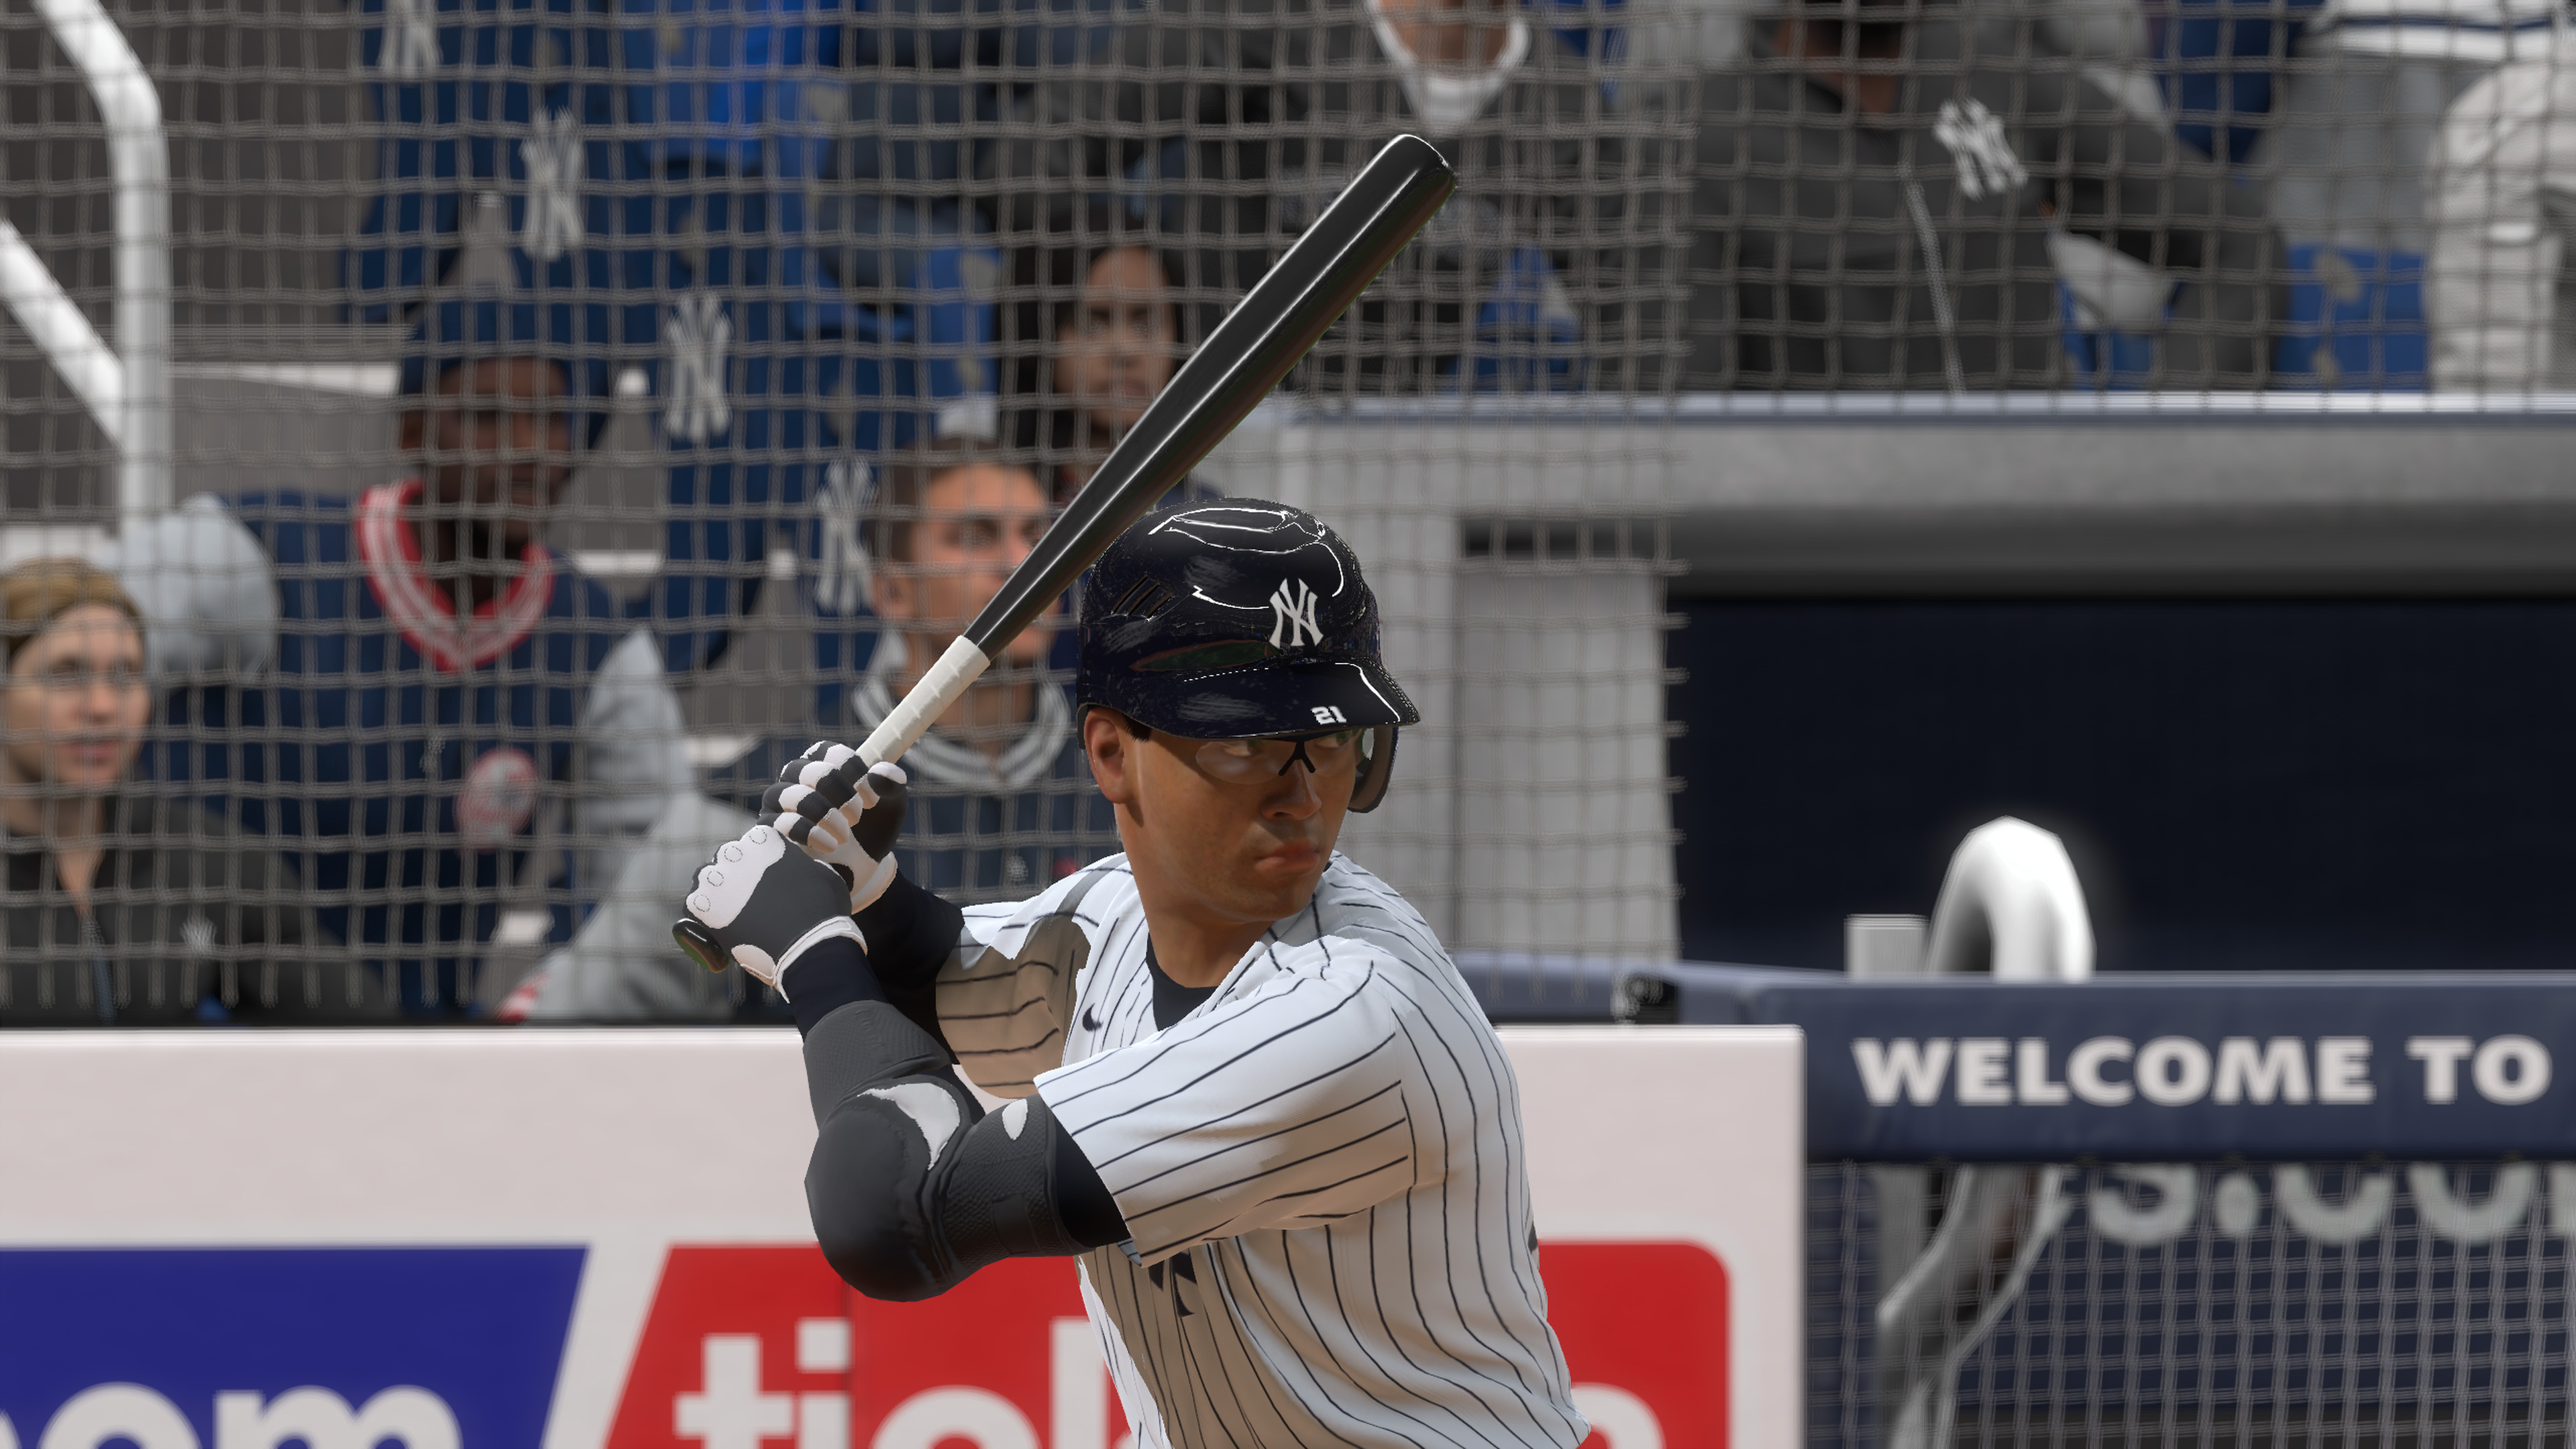 a close-up of a brown-skinned man wearing a New York Yankees jersey awaiting a pitch at Yankee Stadium in a night game in MLB The Show 20